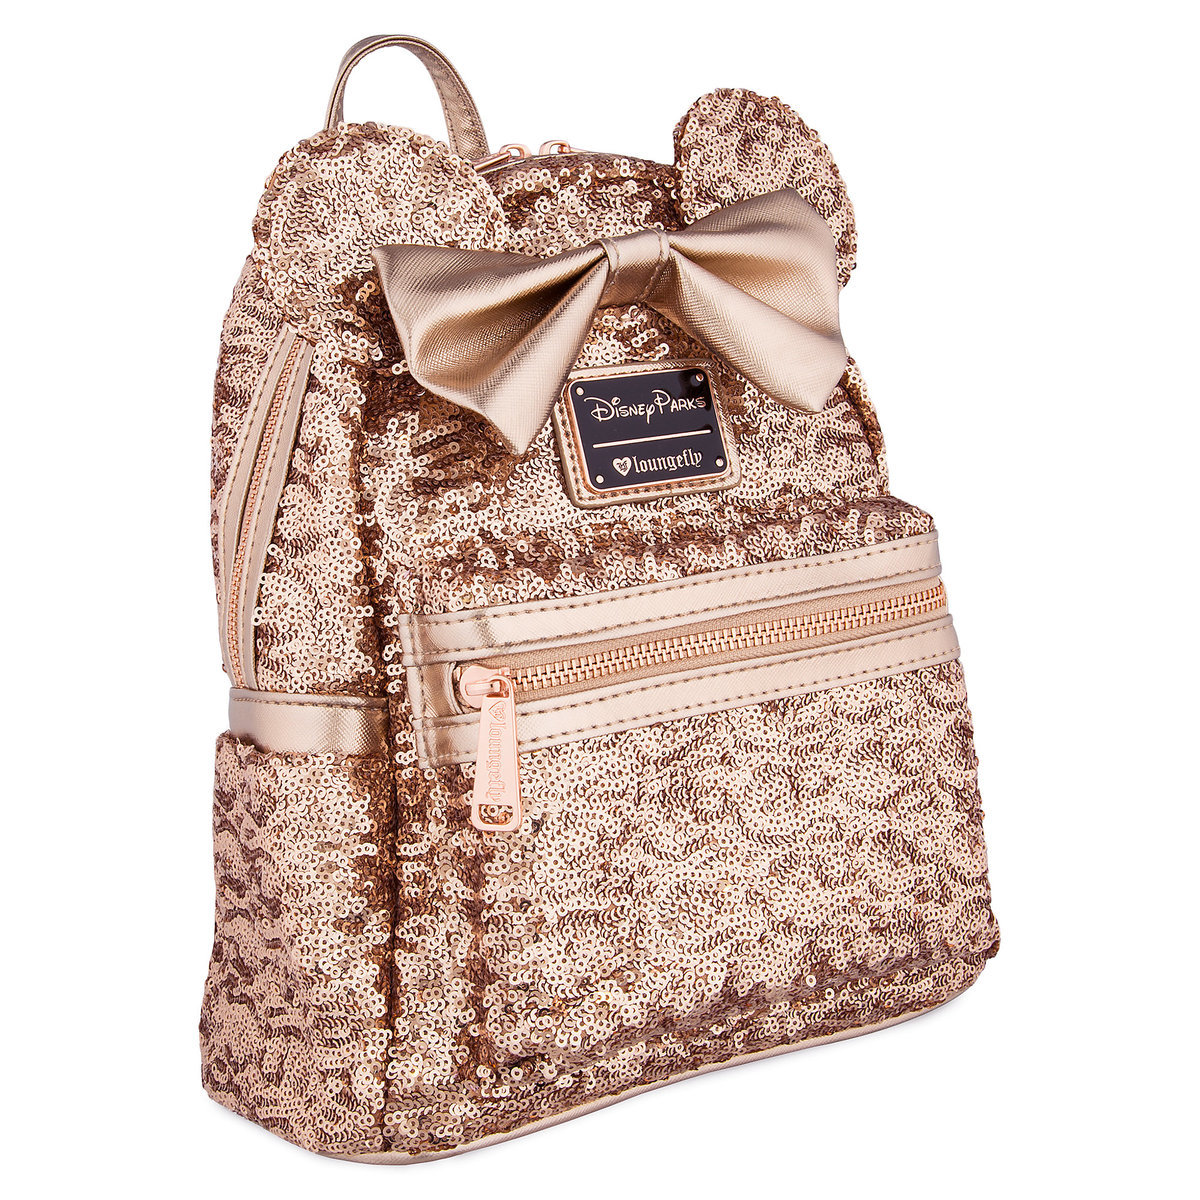 de615404b68 Disney Loungefly Mini Backpack - Minnie Mouse - Rose Gold Sequin